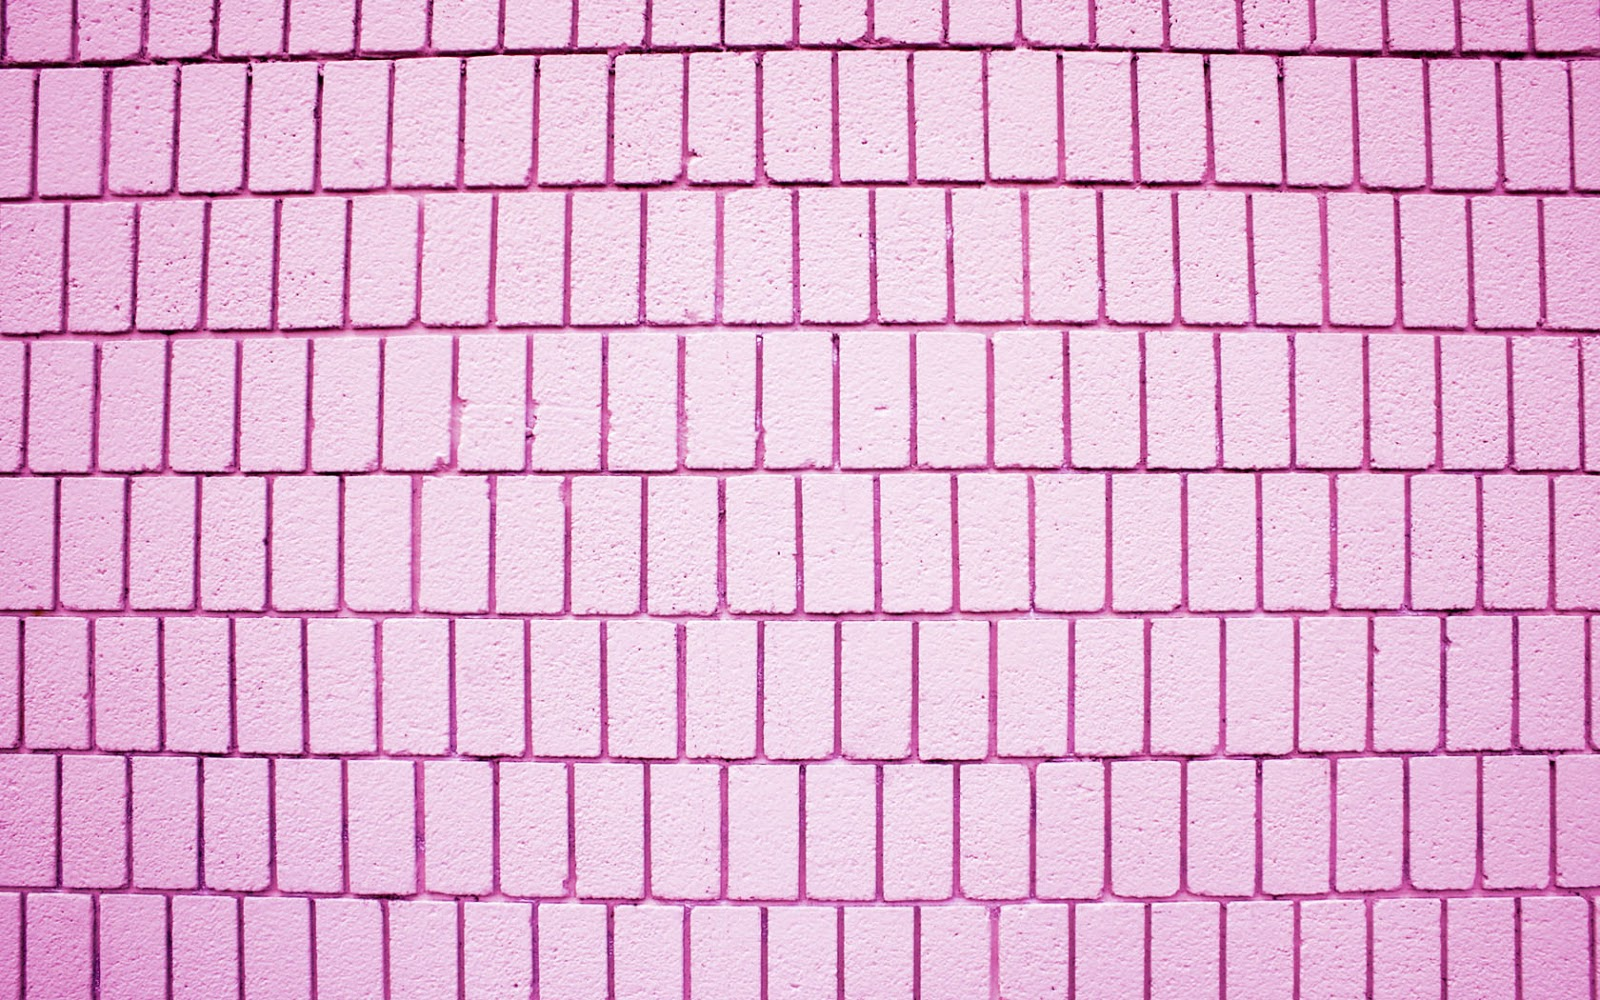 Pink Brick Tumblr Background